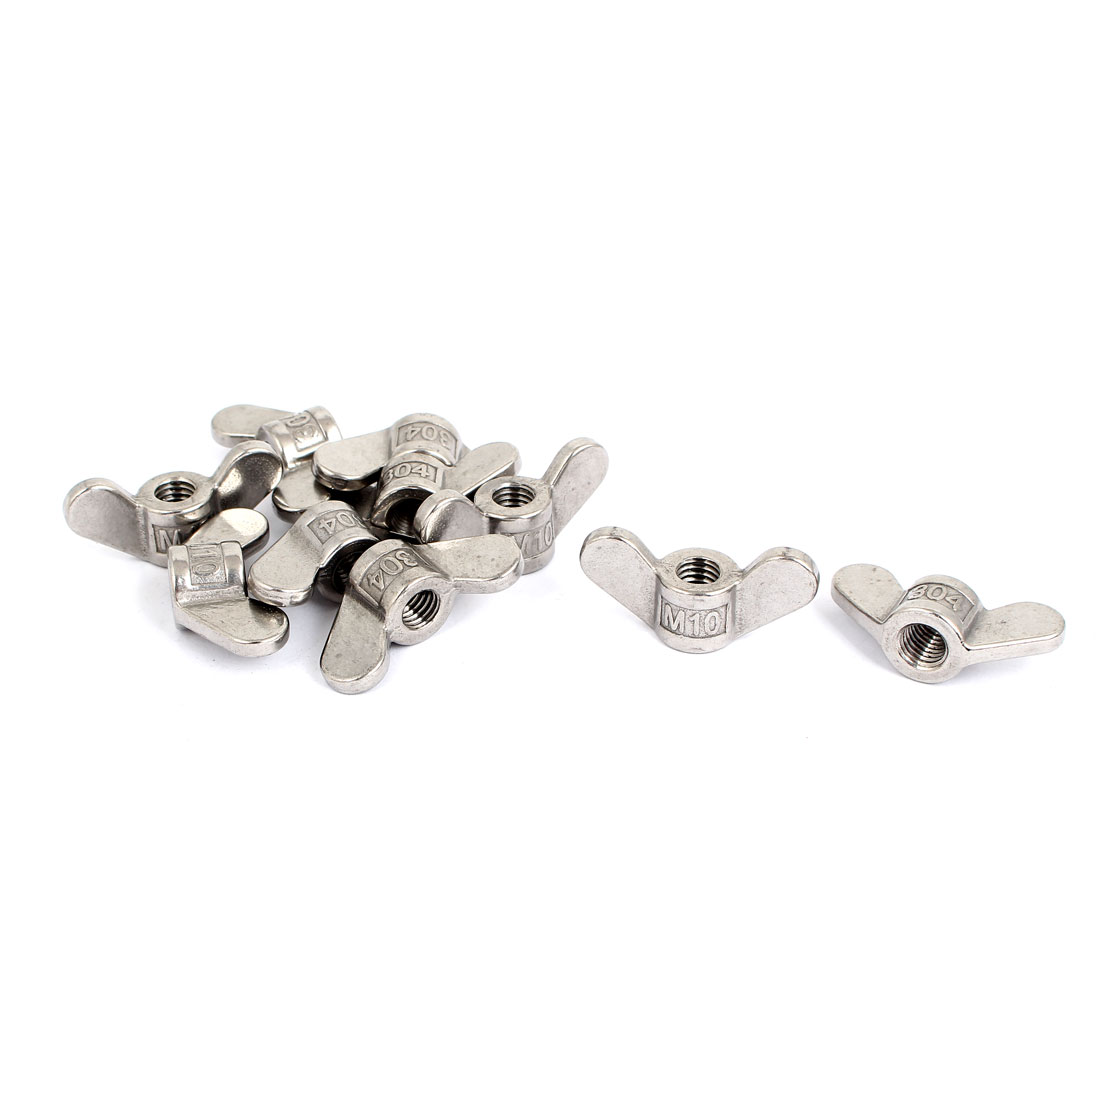 M10 304 Stainless Steel Butterfly Wing Nut Screw Silver Tone 10 Pcs